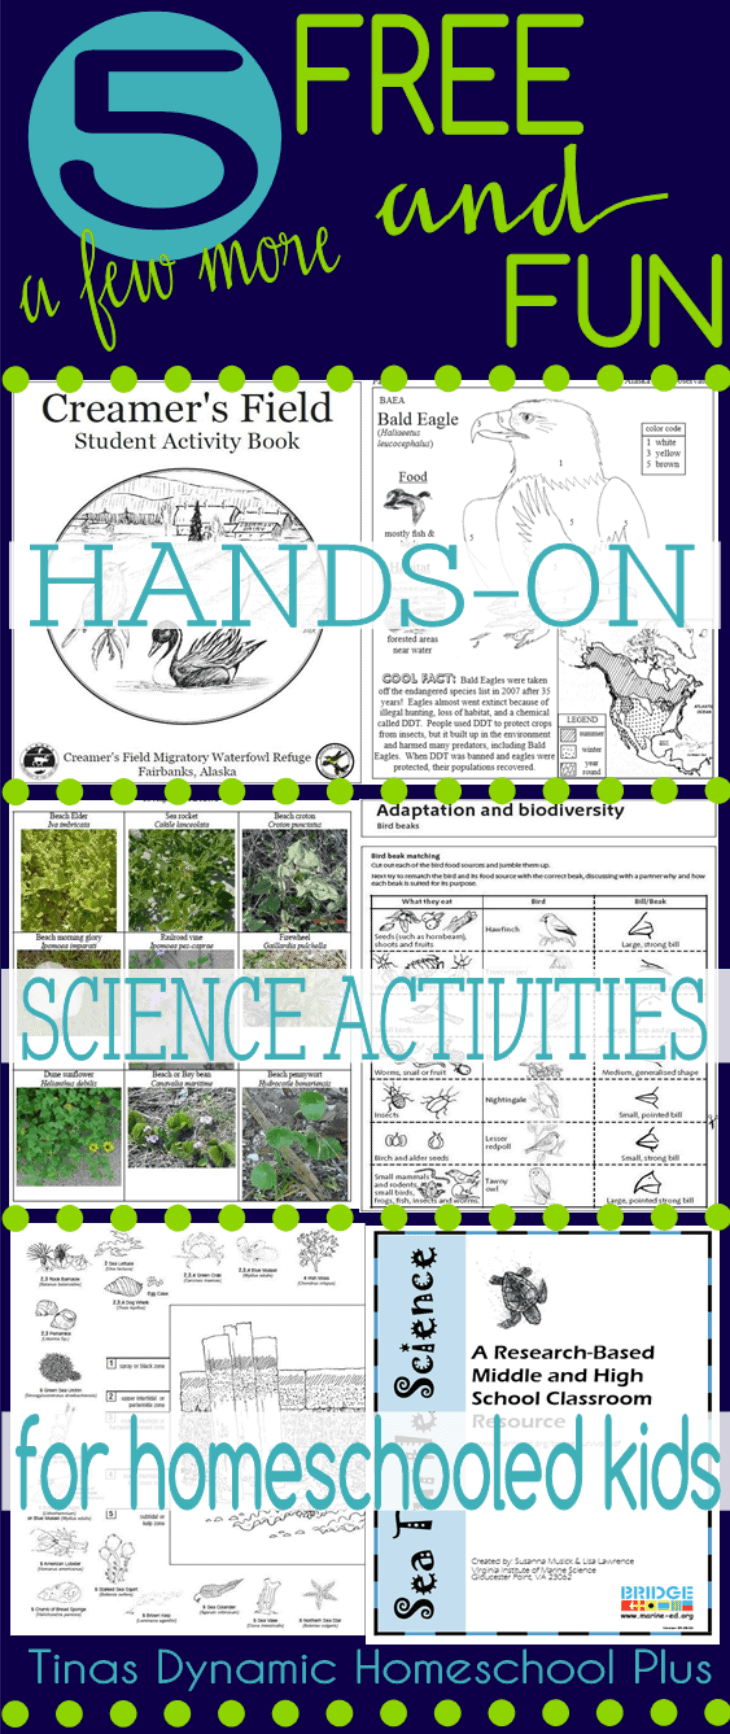 5-FUN-and-FREE-Hands-on-Science-Activities-for-Homeschooled-Kids-@-Tinas-Dynamic-Homeschool-Plus